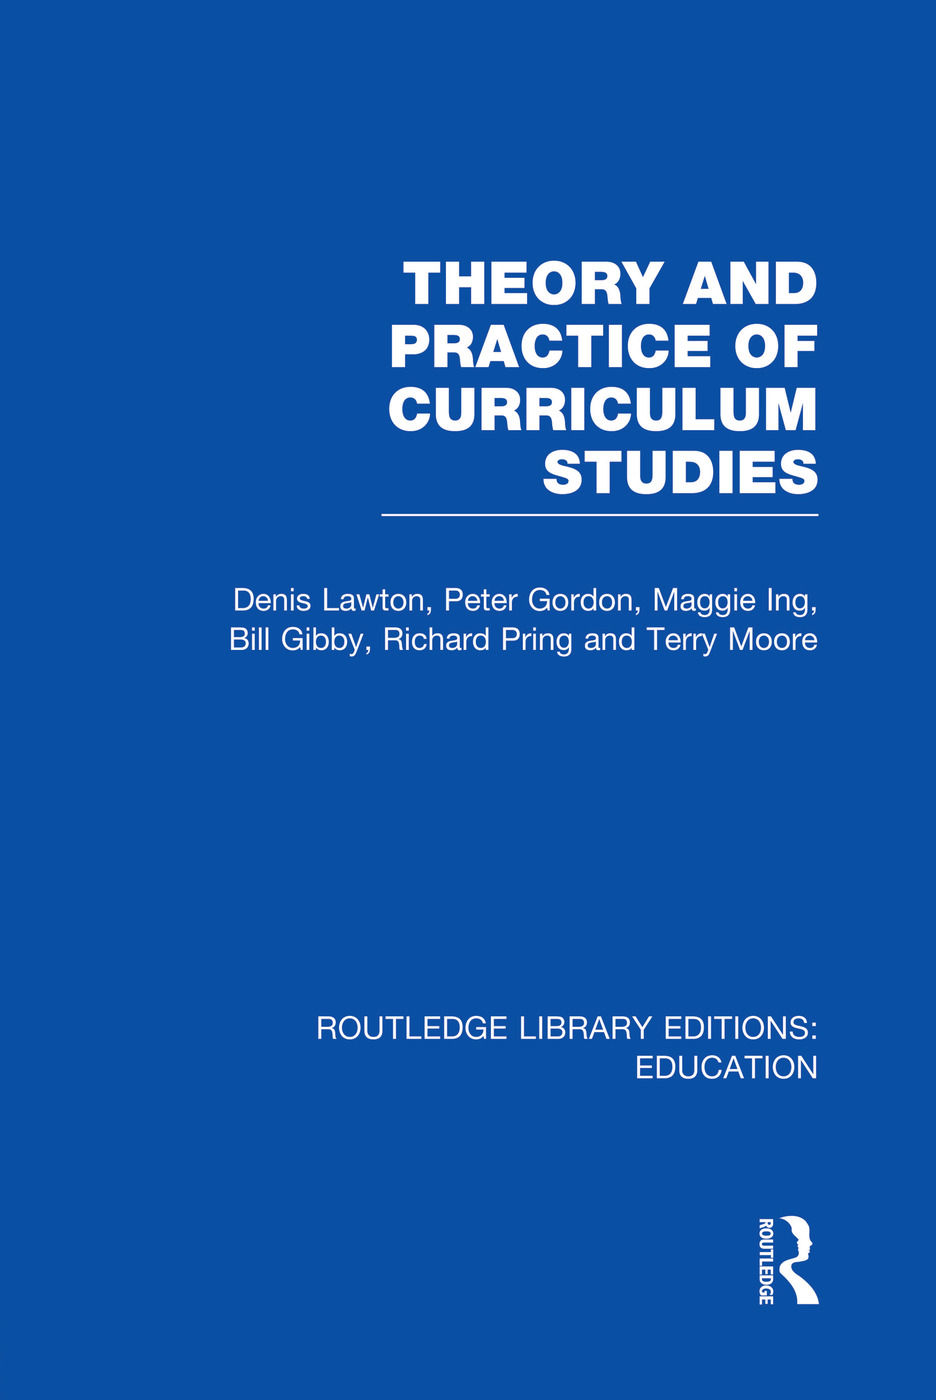 Theory and Practice of Curriculum Studies